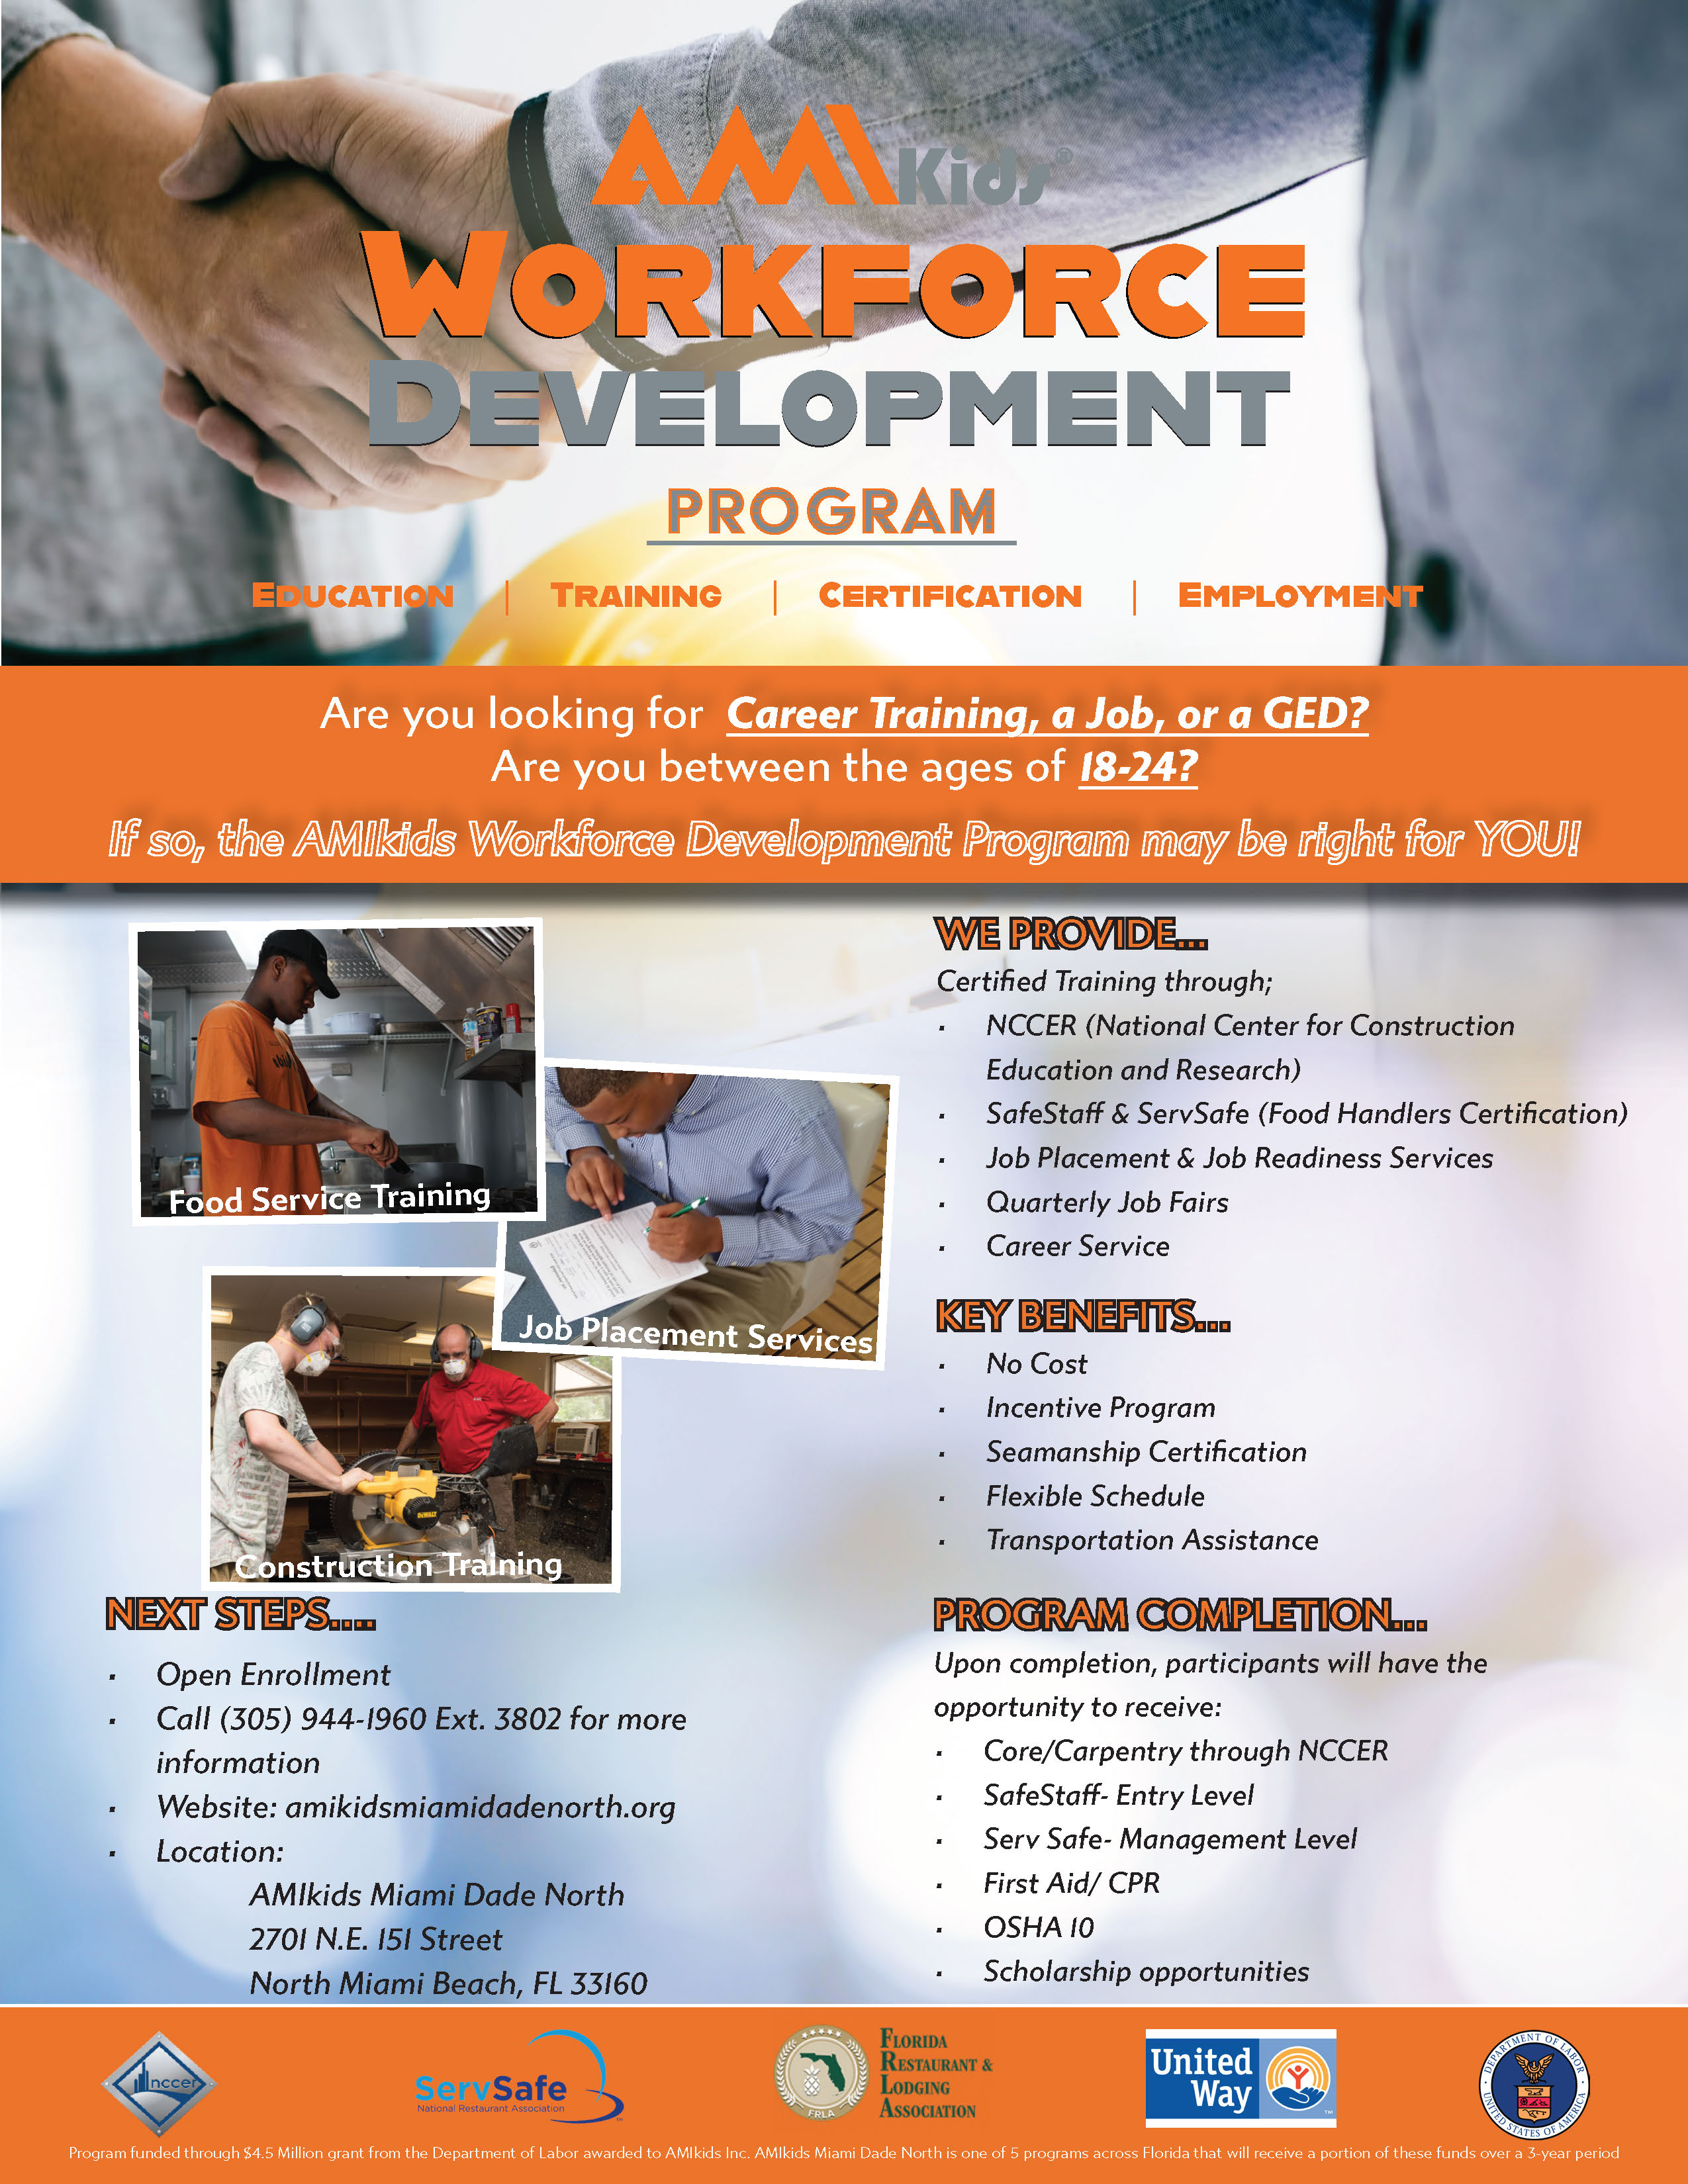 Workforce Development Flyer Miami Dade North 12.11.19